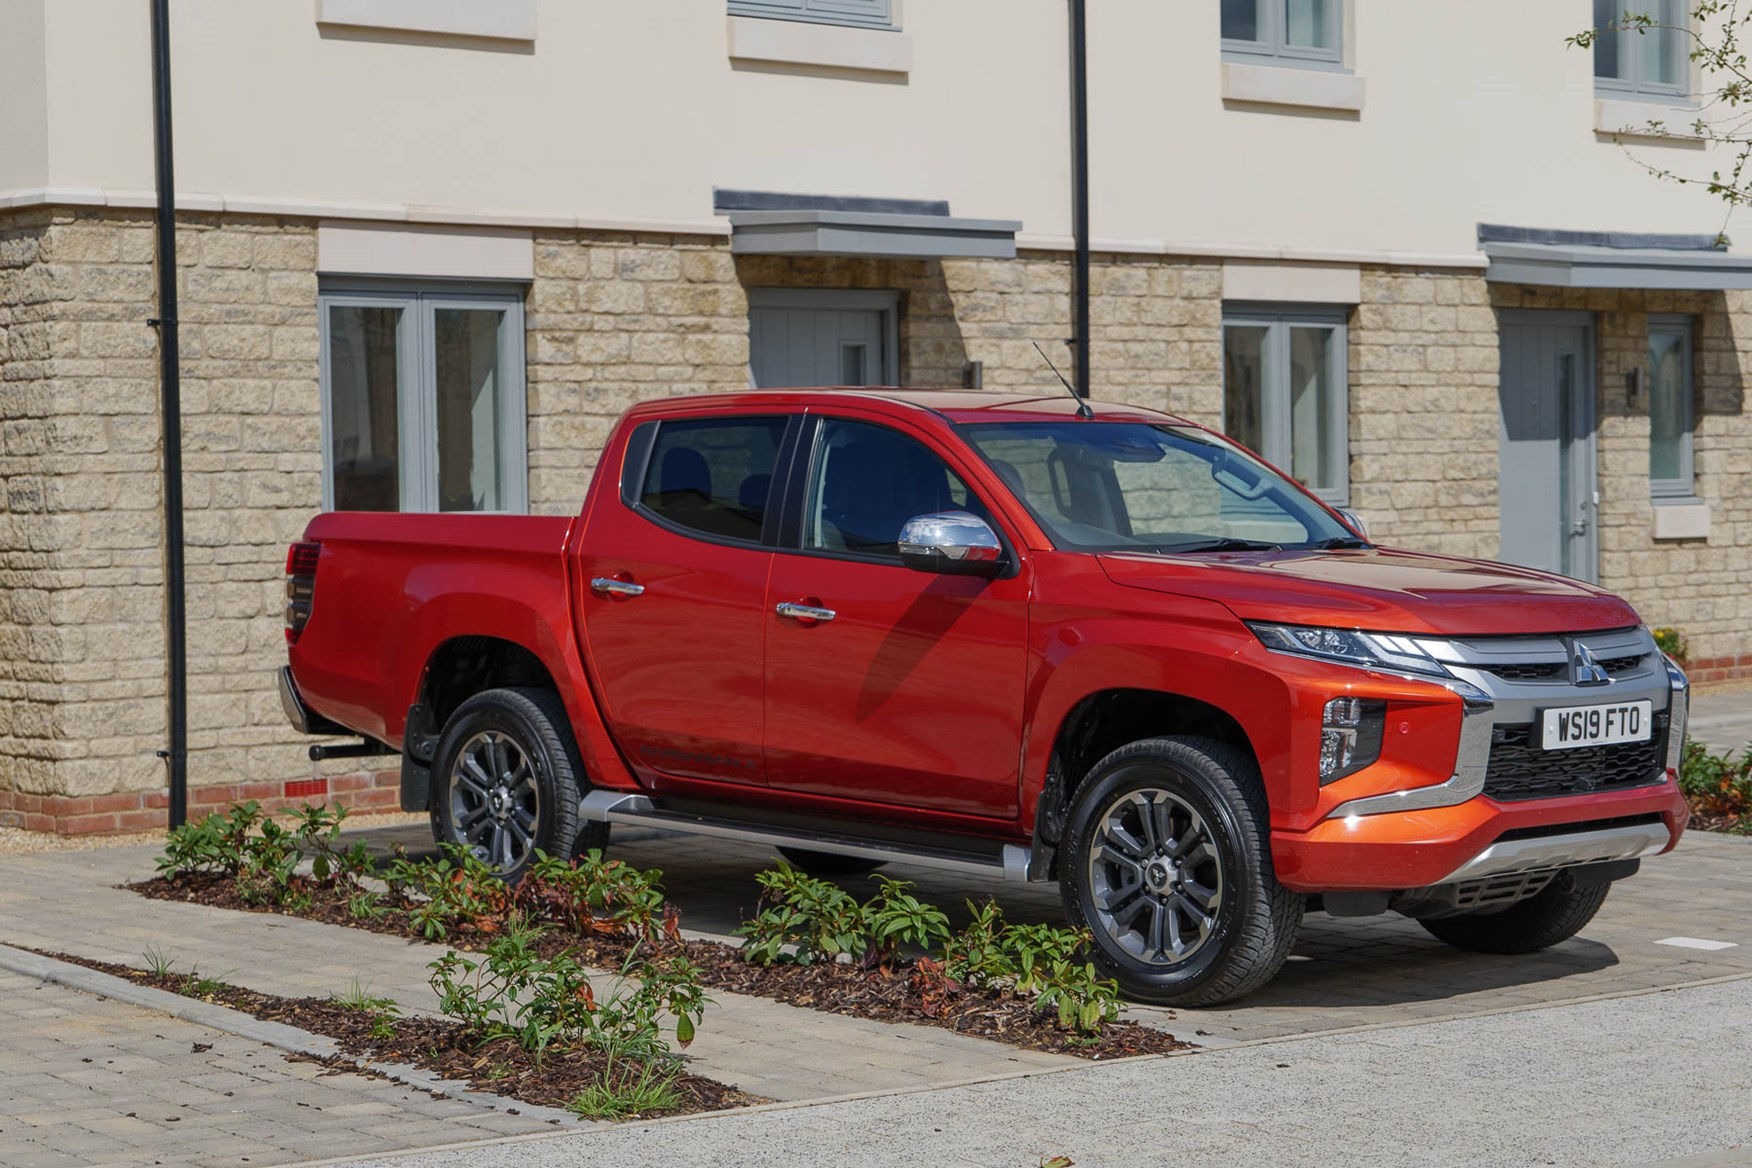 The 2019 Mitsubishi L200 Barbarian X fits on urban driveways comfortably, thanks to the narrow dimensions